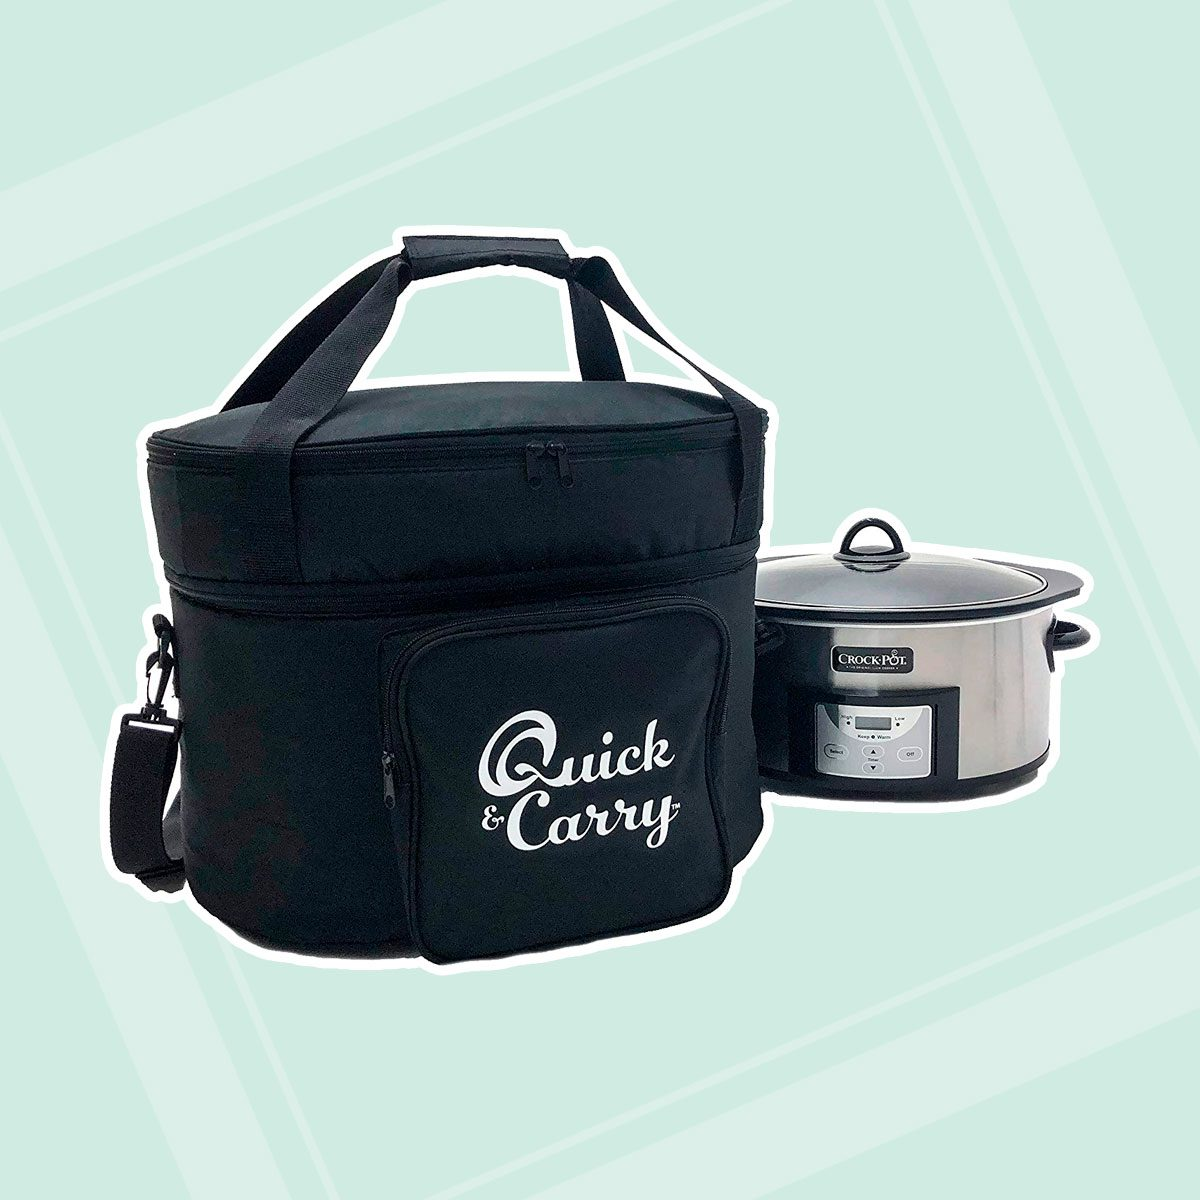 Quick & Carry Slow Cooker Travel Tote Bag